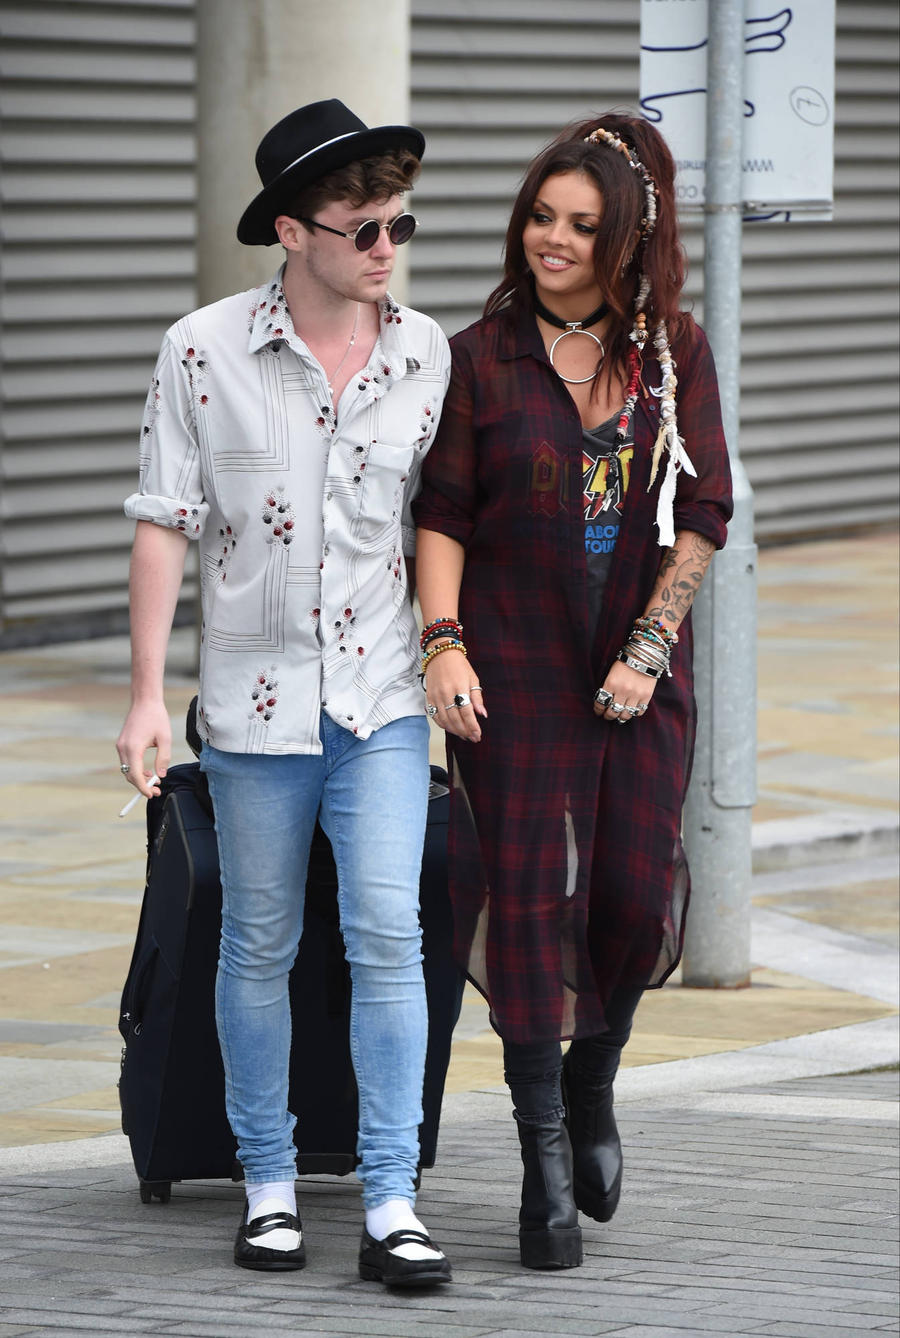 Rixton Star's Mum Confirms Jesy Nelson Engagement Is Off